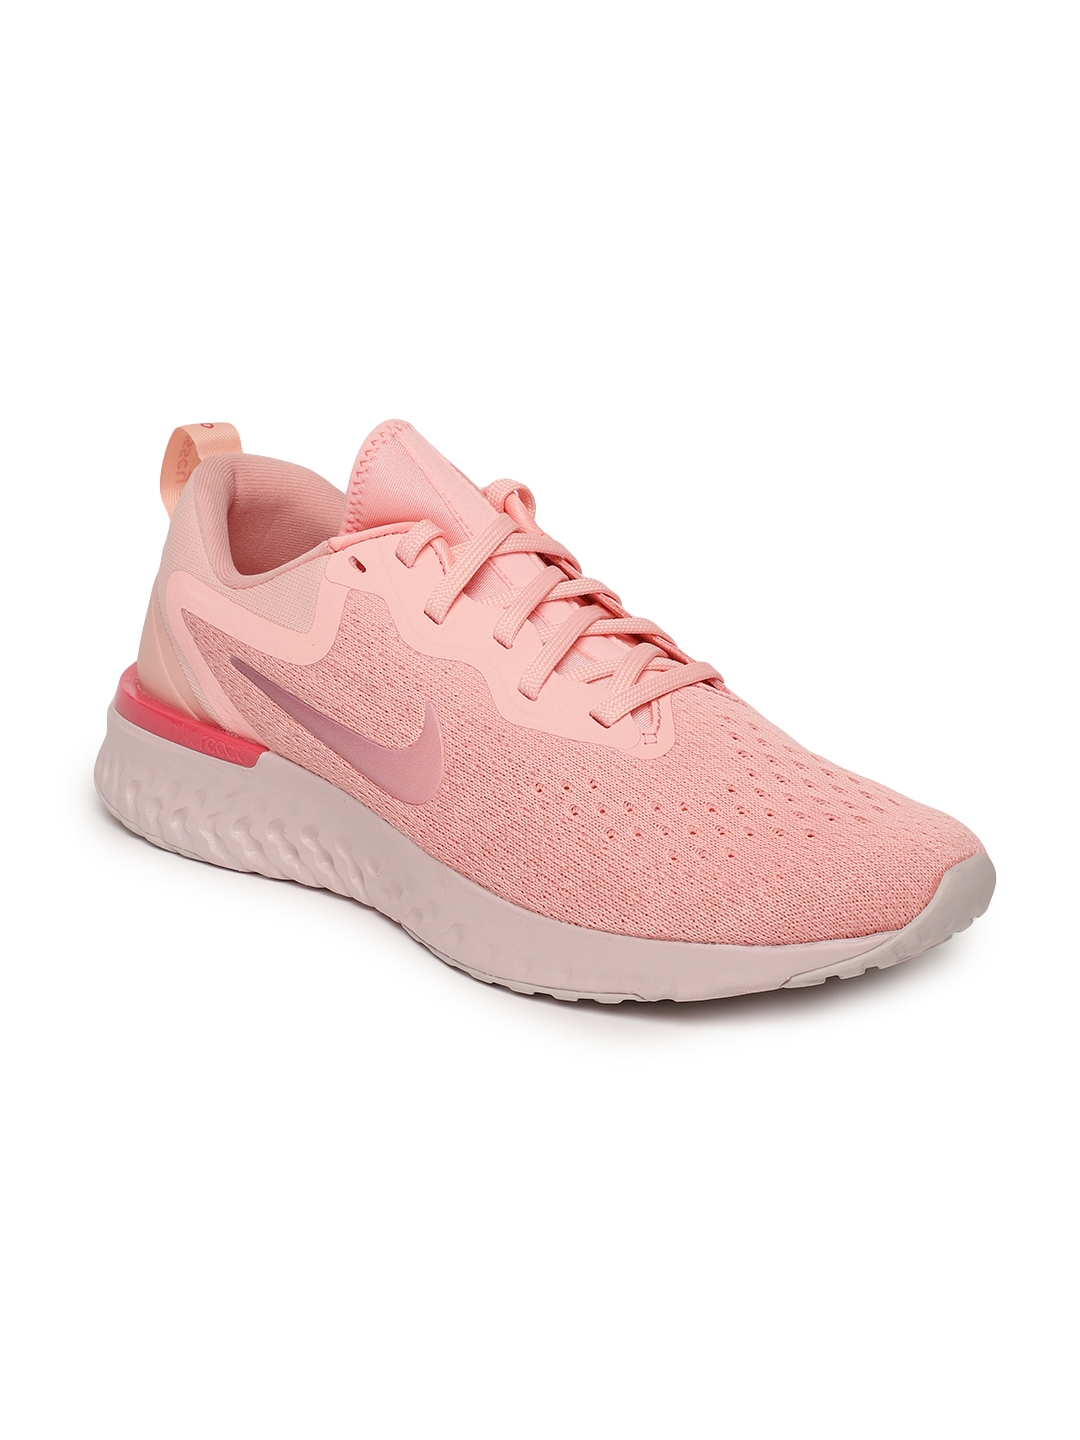 d8c9b32ce2de2 Buy Nike Women Pink Odyssey React Running Shoes - Sports Shoes for ...